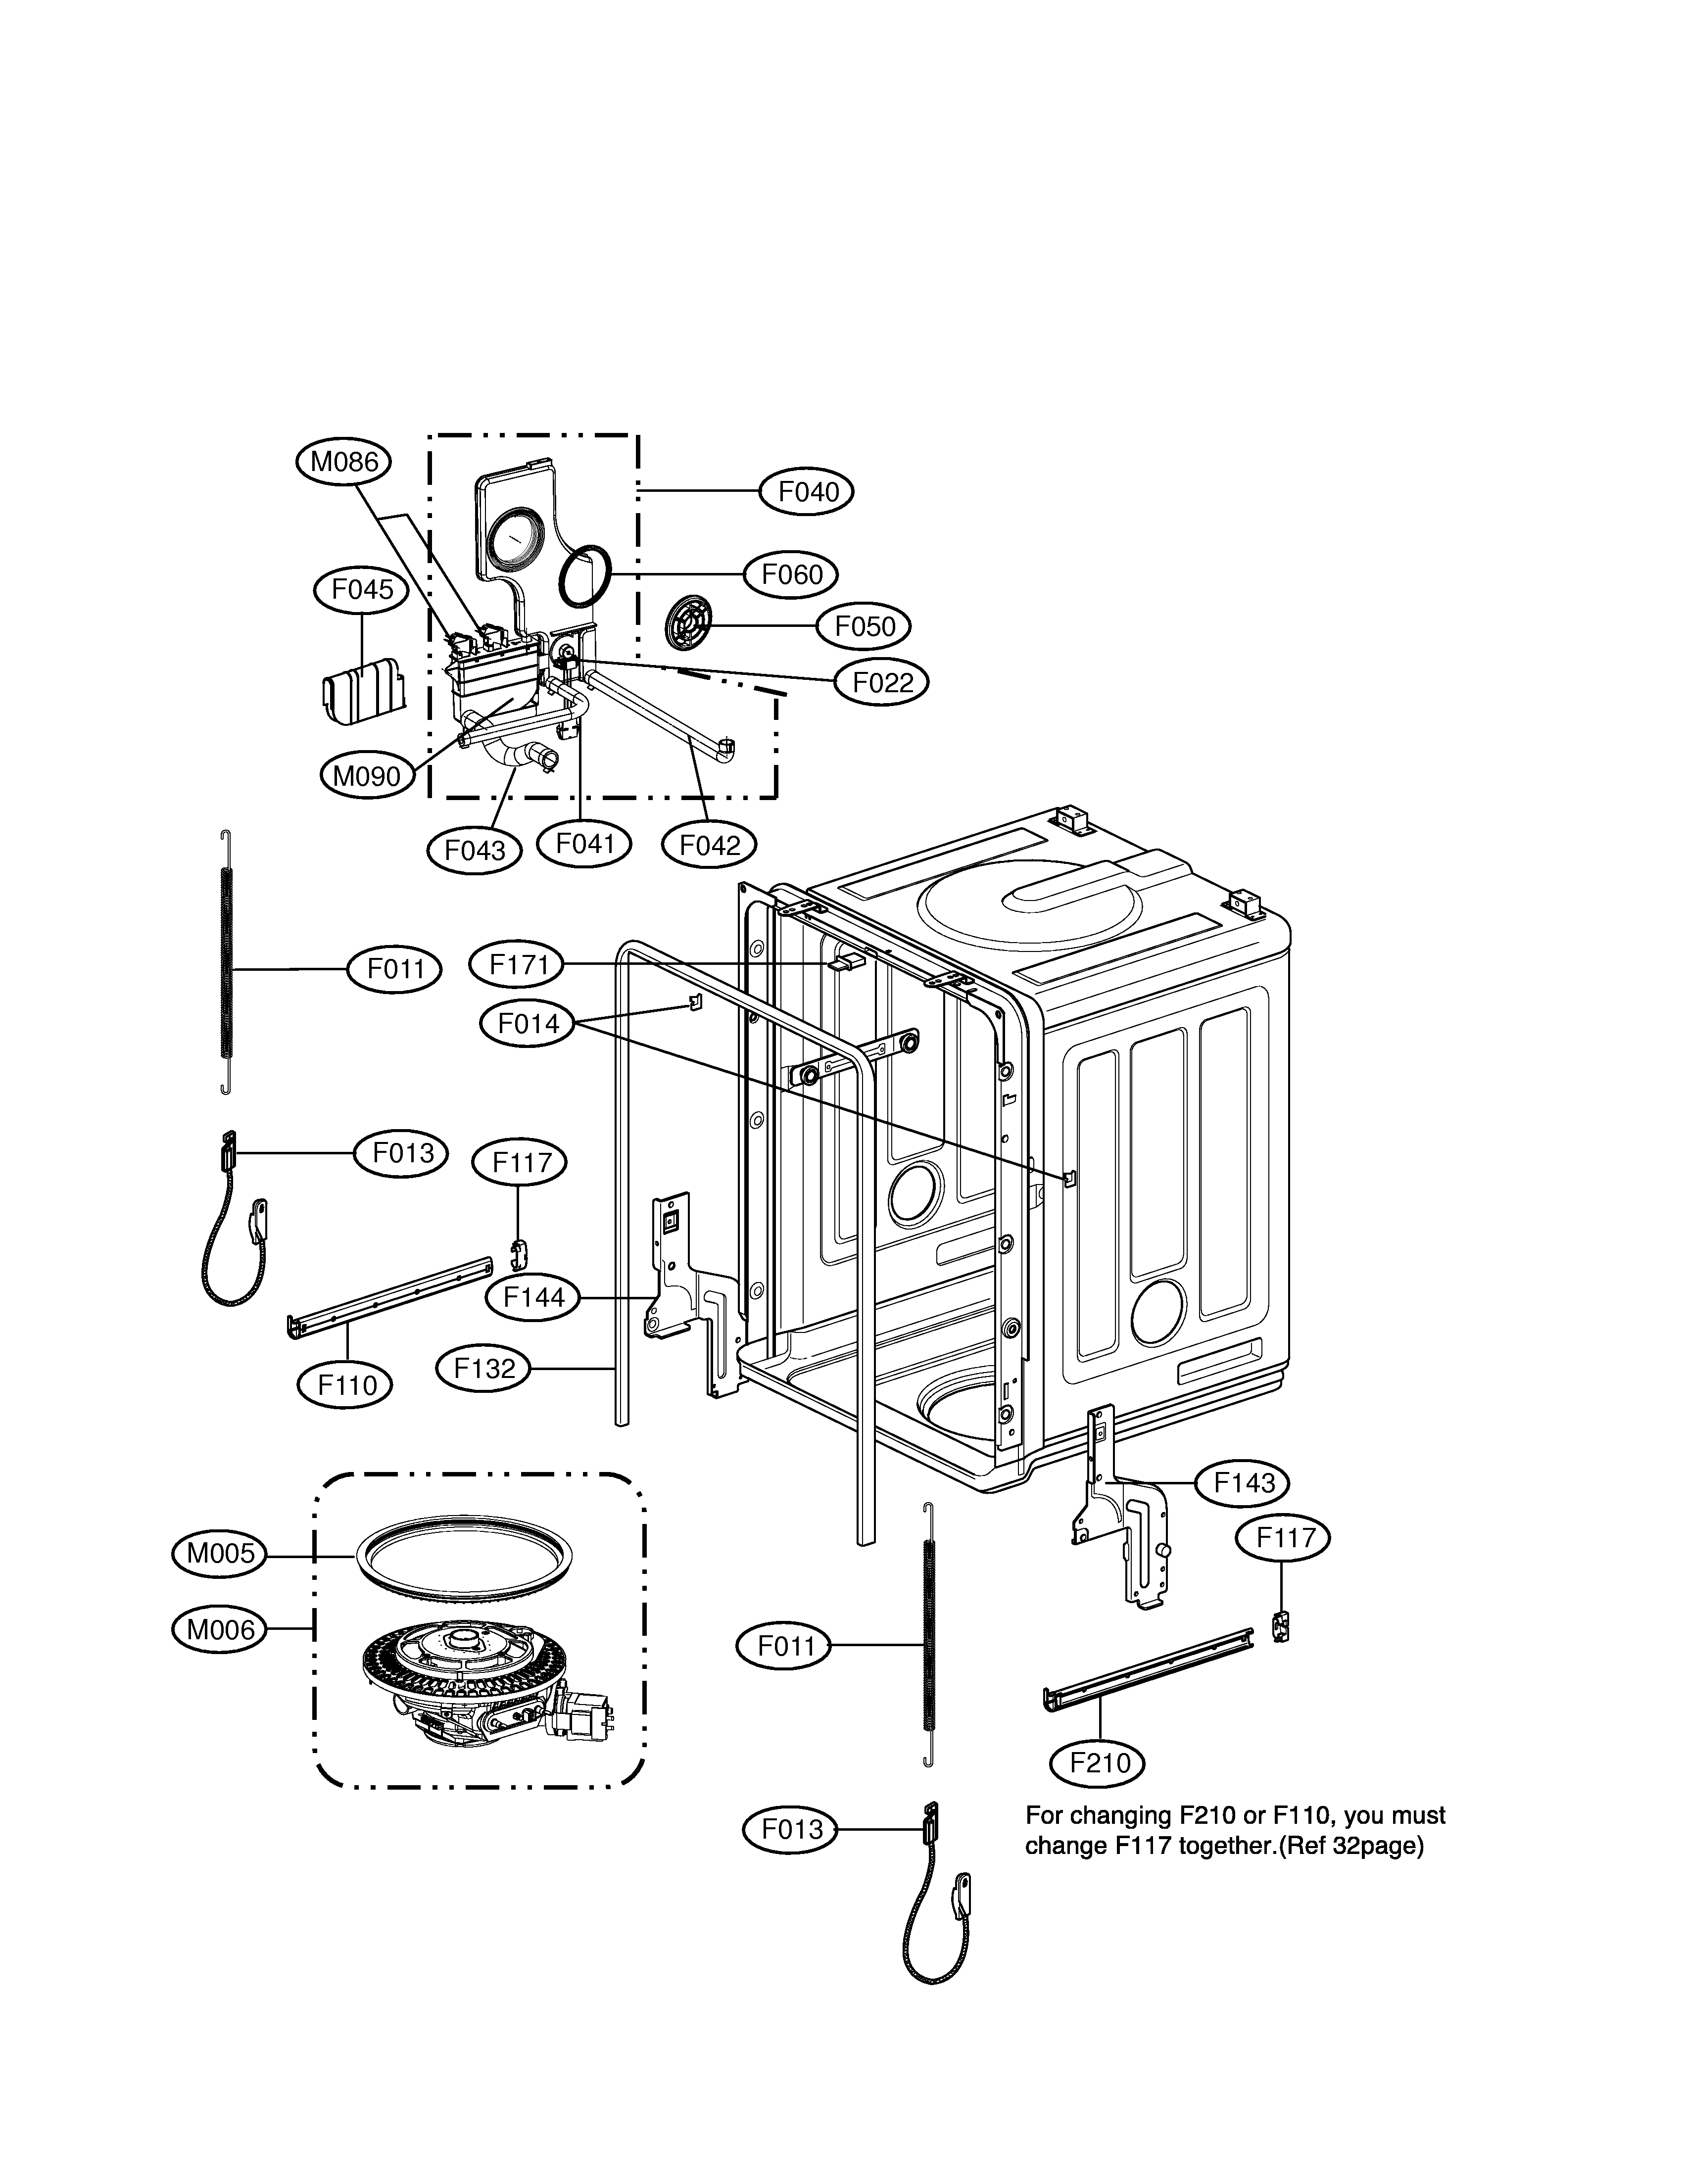 lg dishwasher spray guide assembly